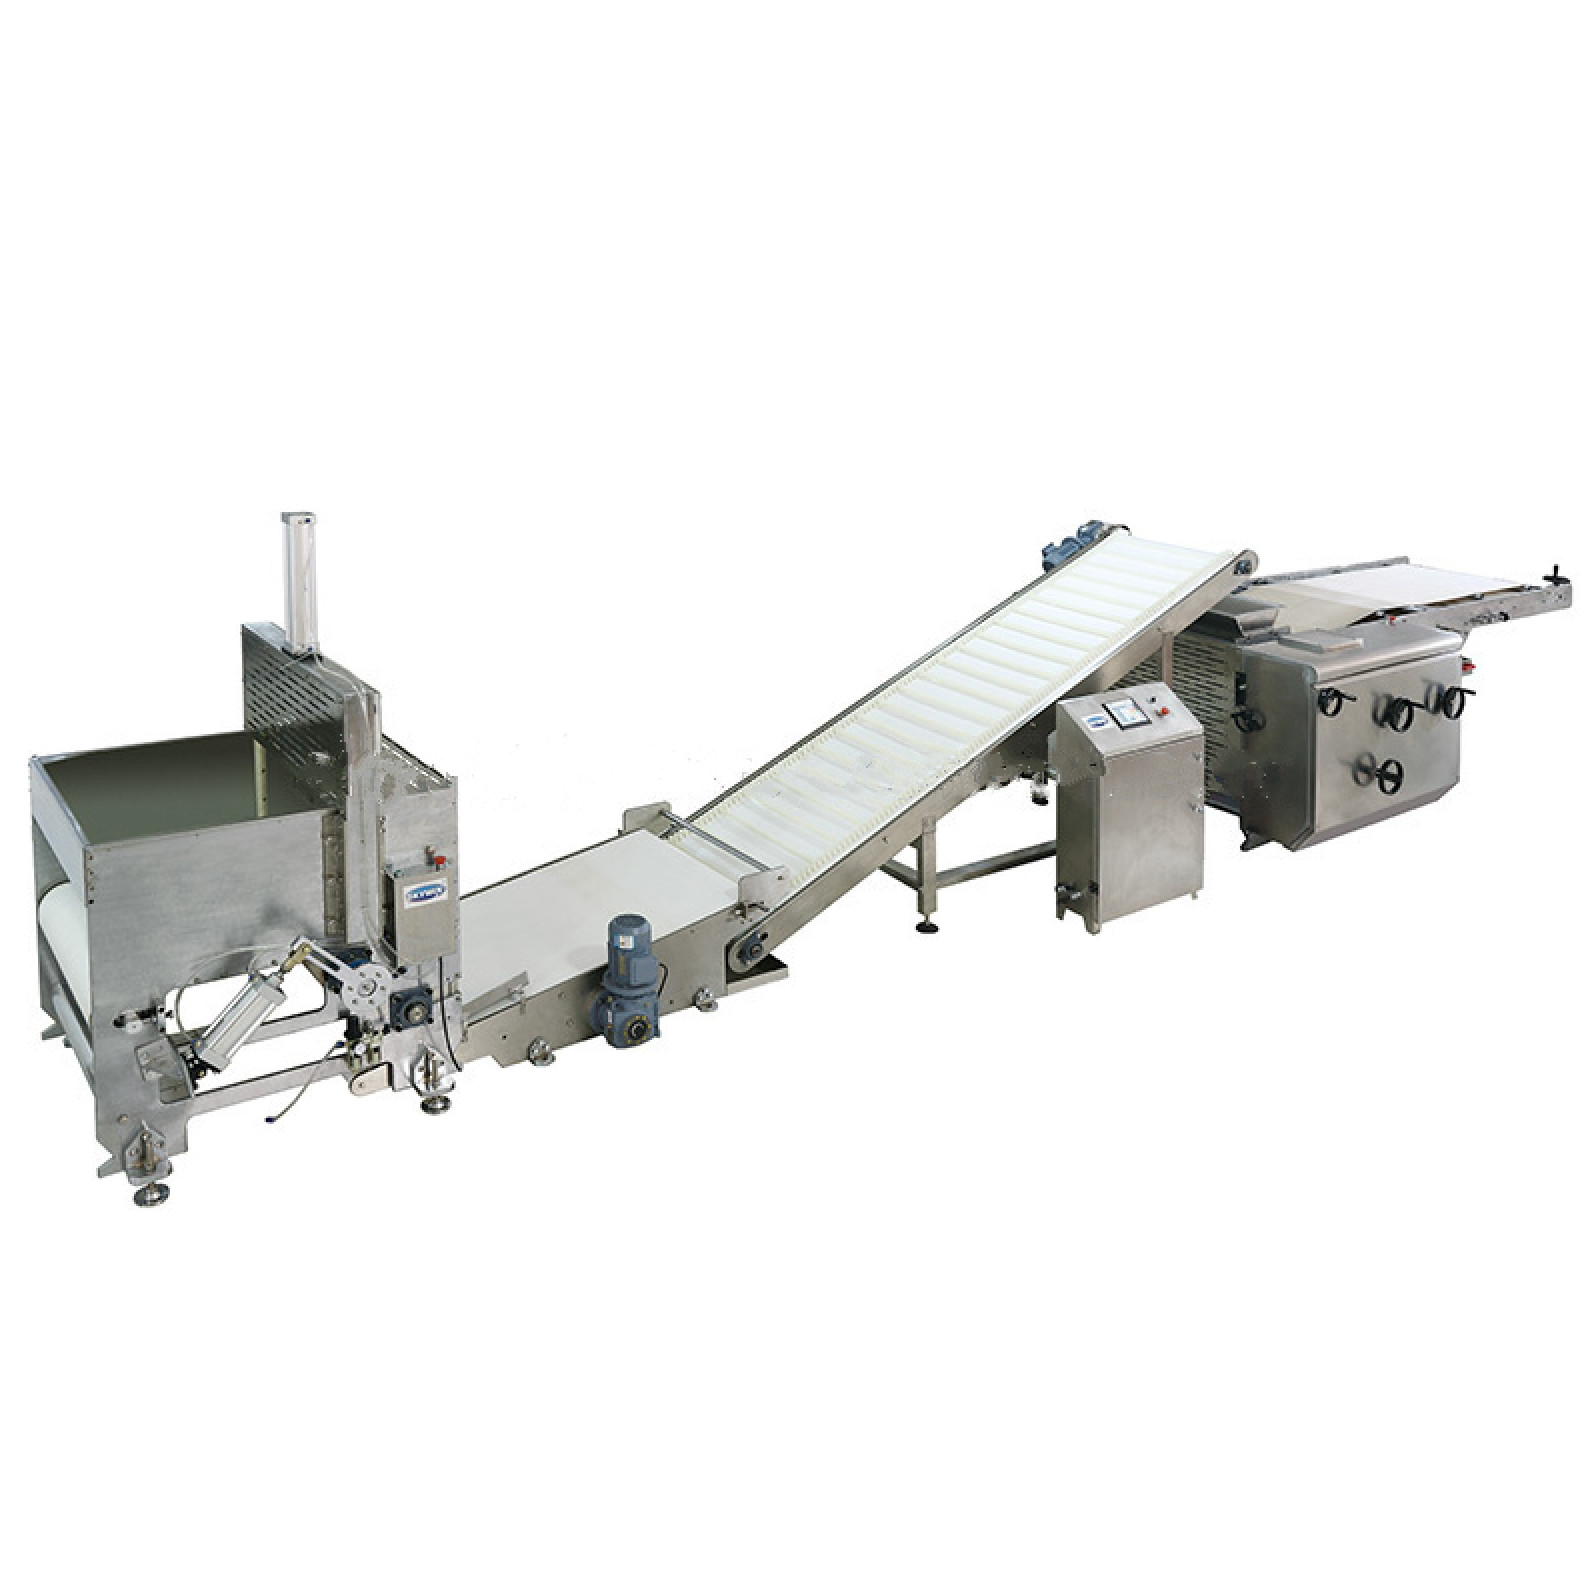 ruian baolida machinery factory - packing machine, shrinking